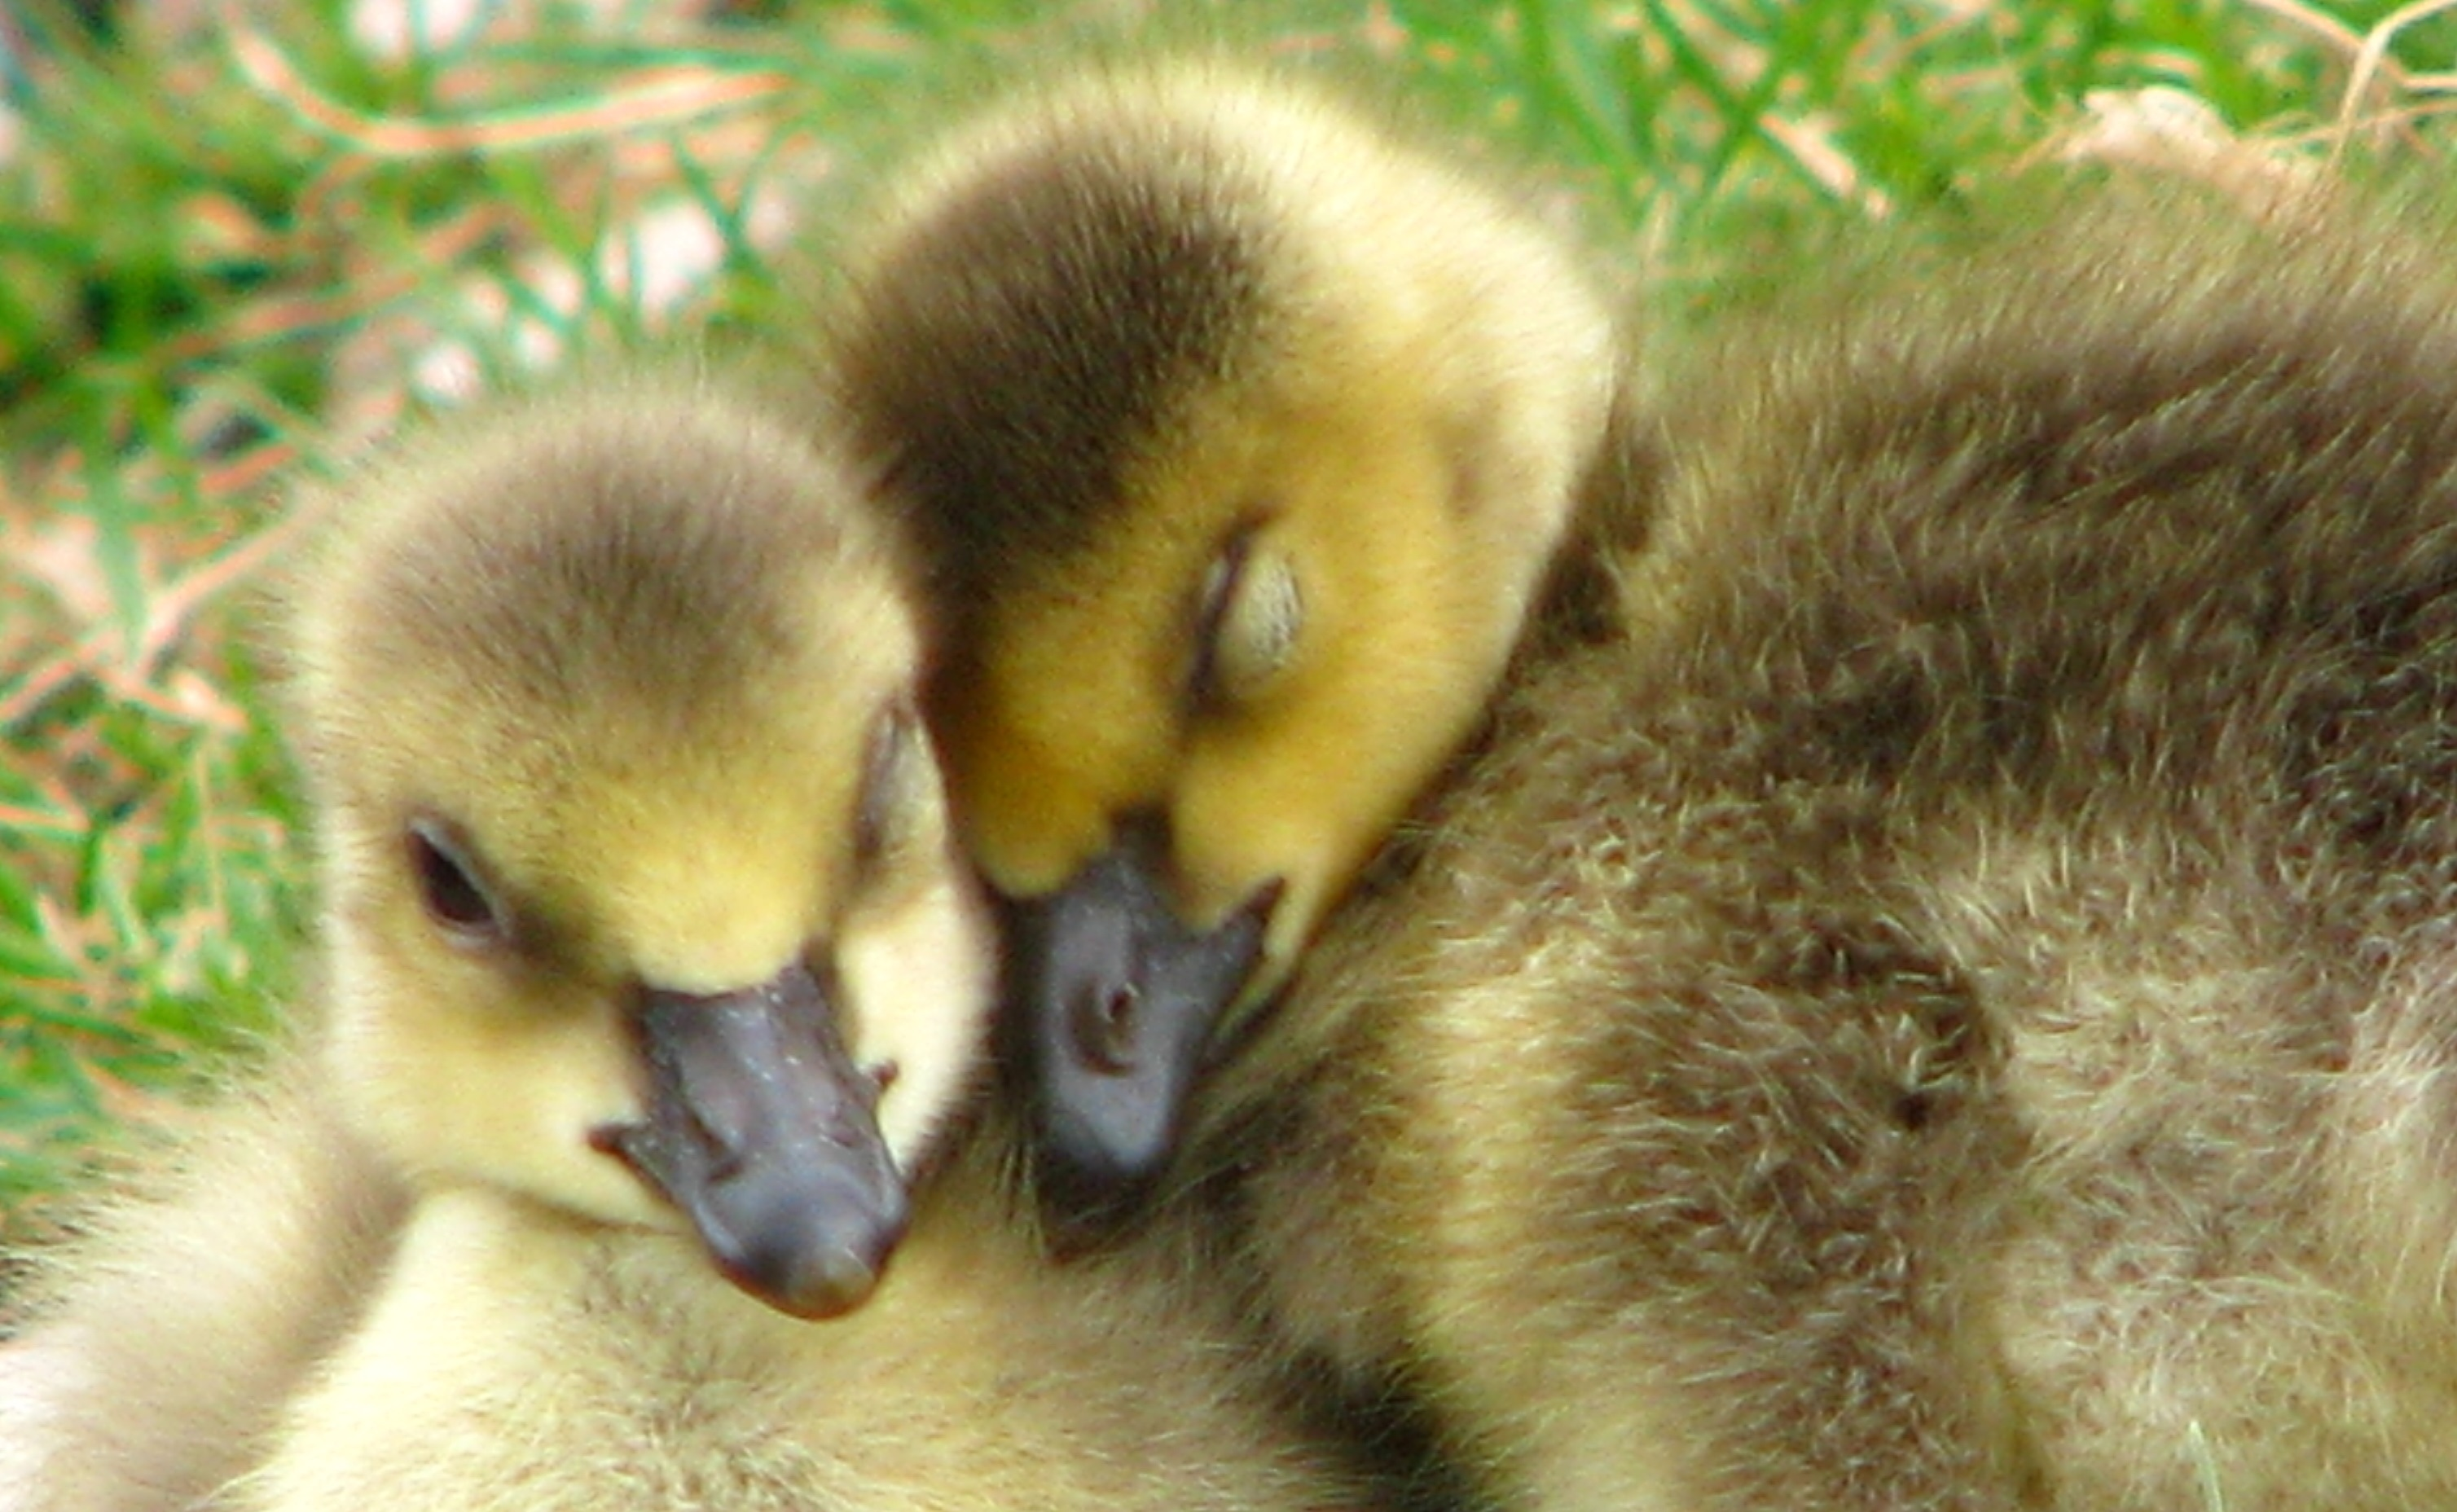 When Baby Geese Are Orphaned, This Wildlife Center Finds